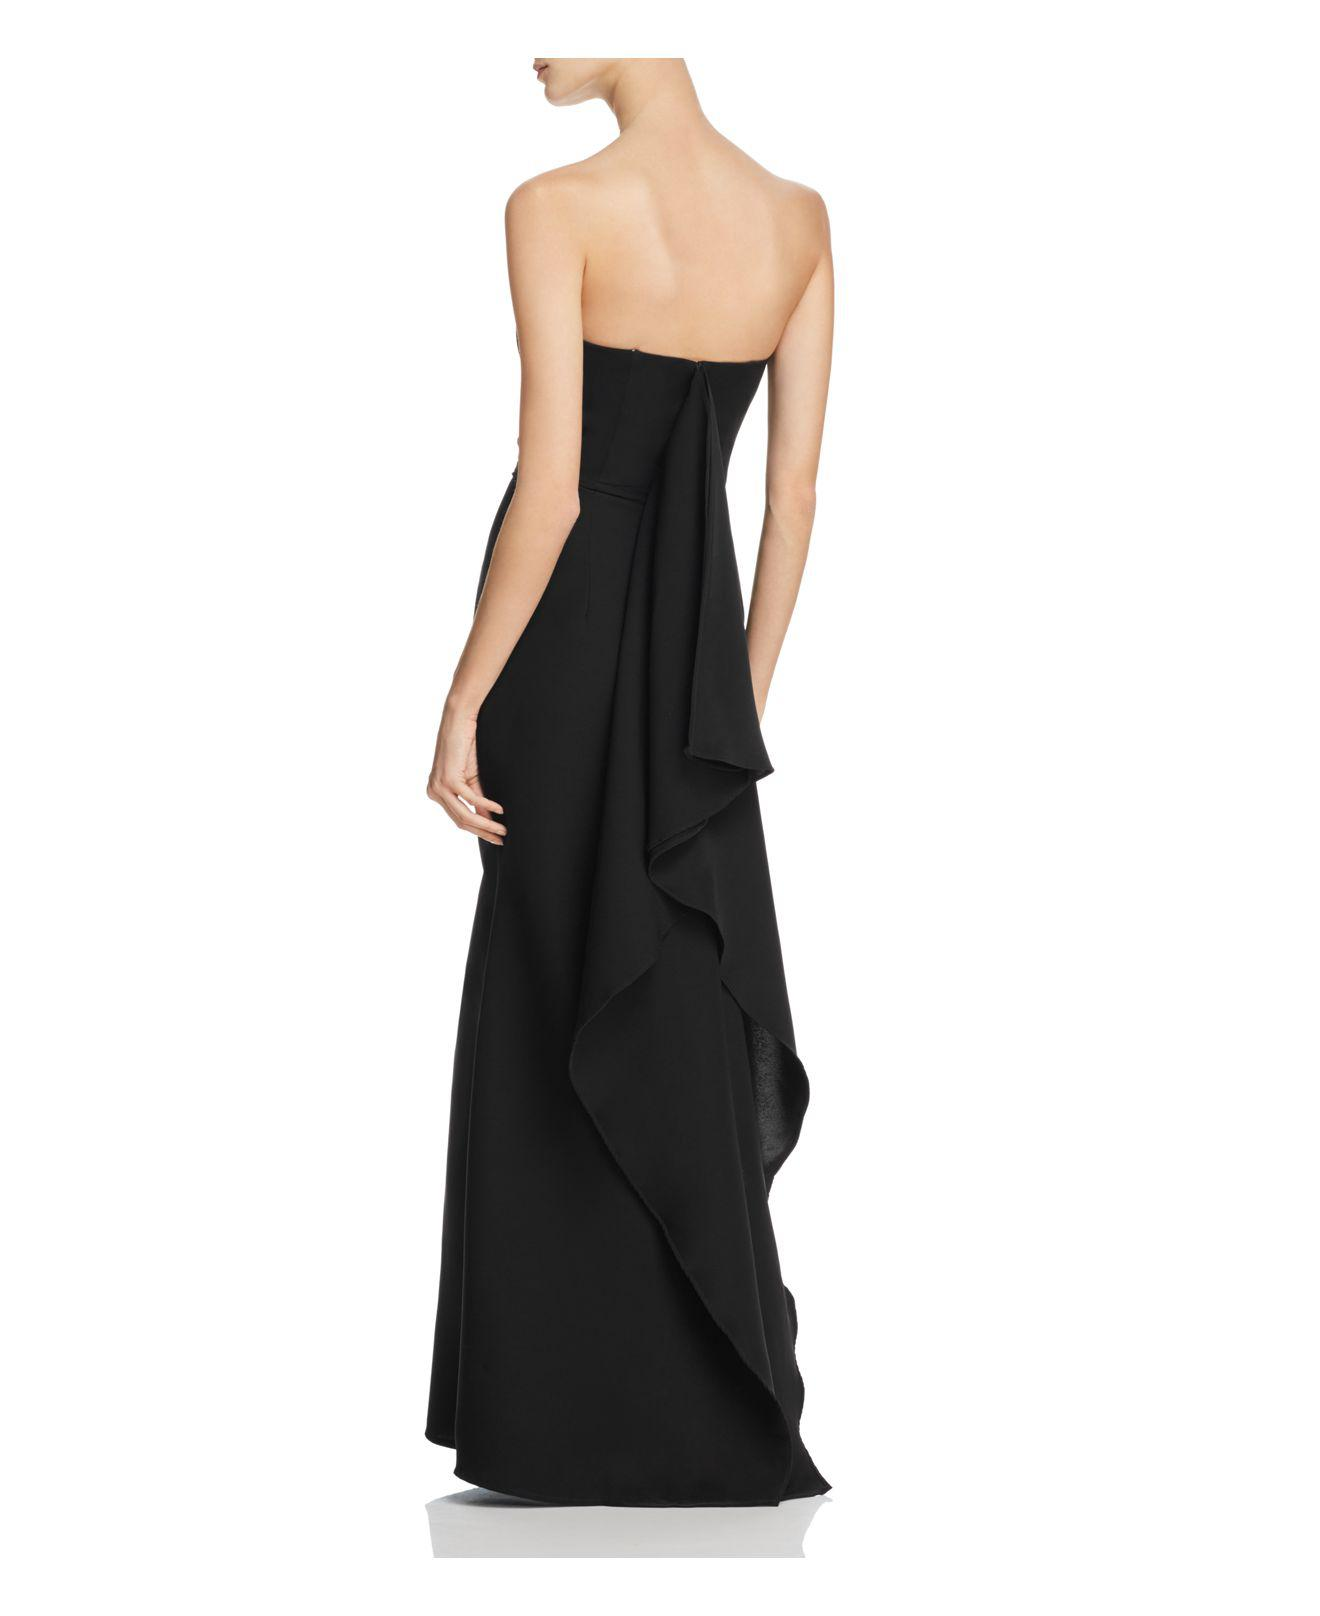 cab08ca0b55f Jarlo Miracle Strapless Gown in Black - Lyst